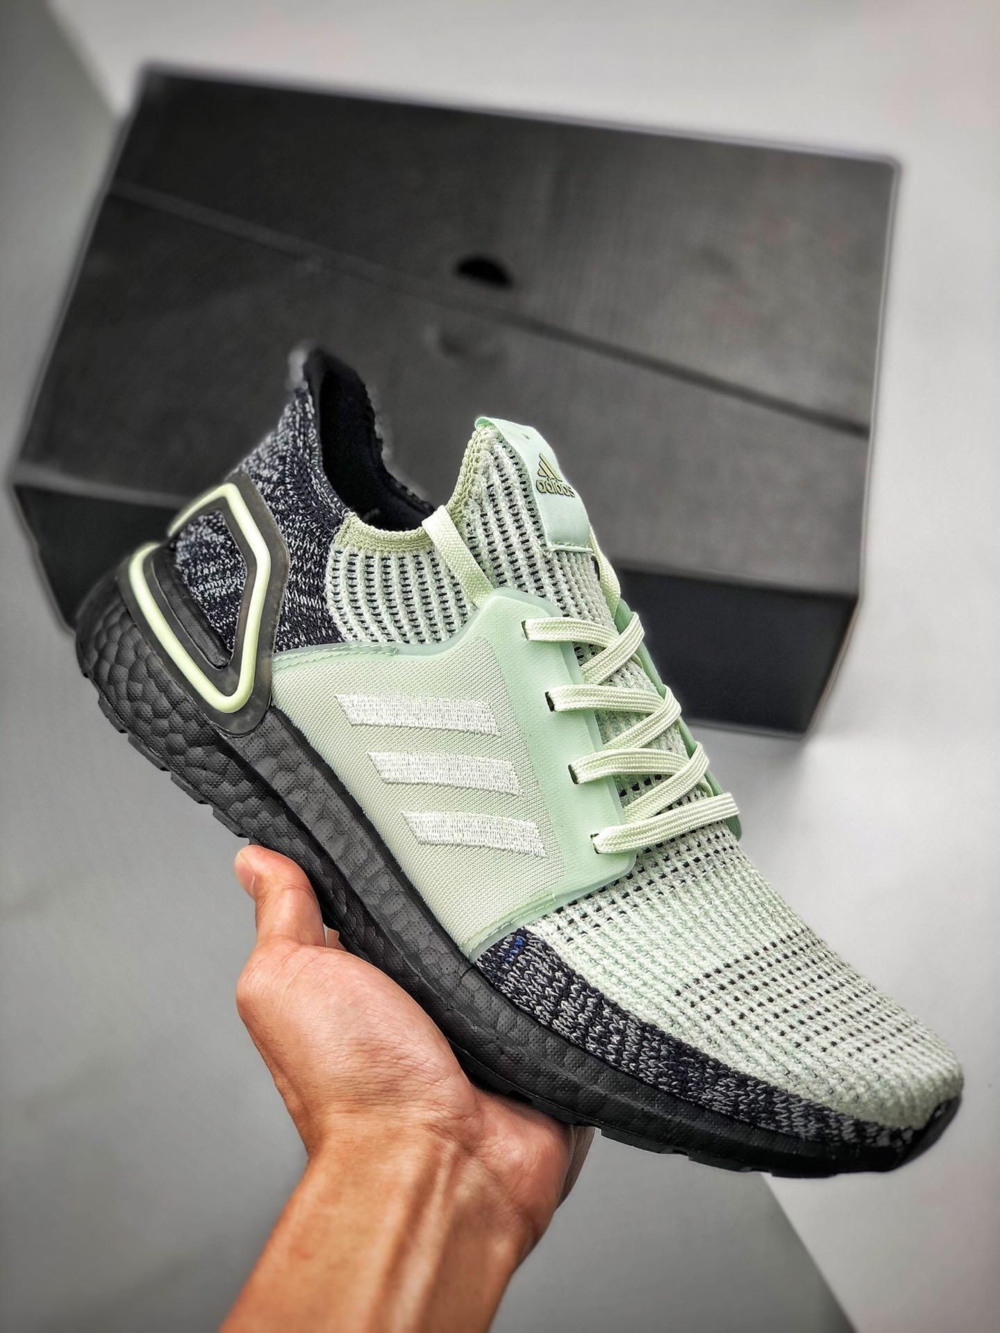 Adidas Ultraboost 19 Black Mint Sale Price 72 Retail 180 Free Shipping In 2020 Sneakers Men Fashion Adidas Ultra Boost Trendy Sneakers